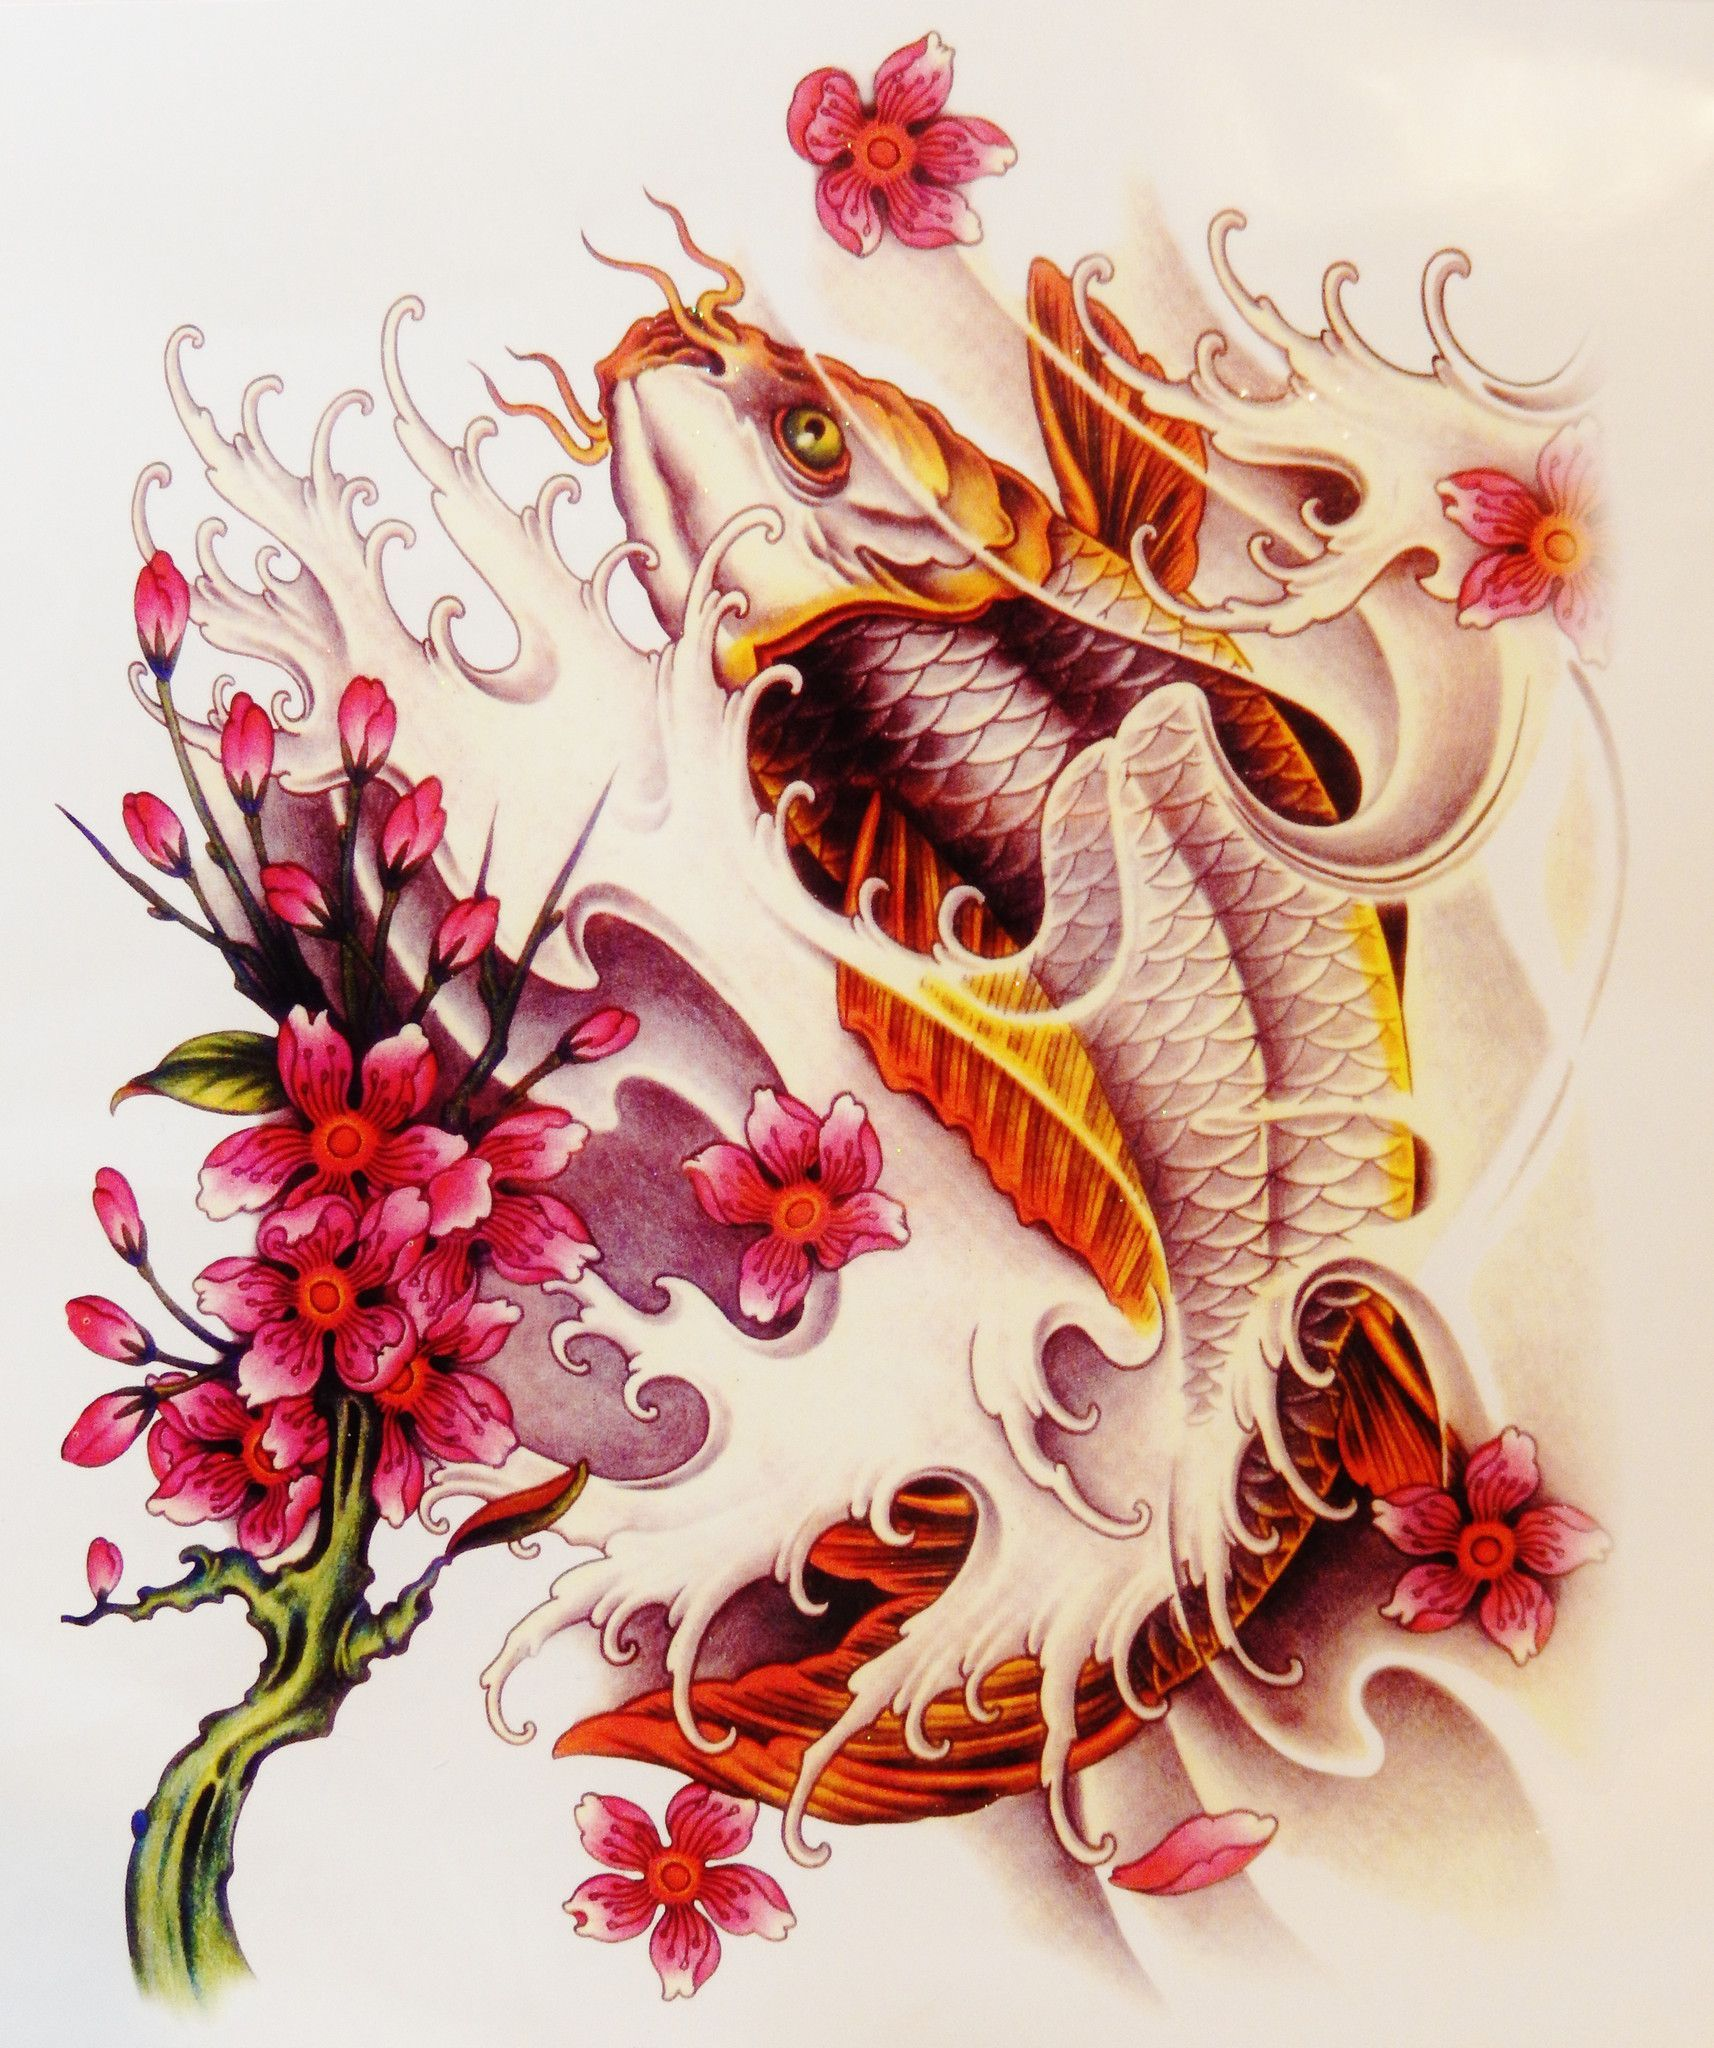 Large Colorful Koi Fish Temporary Tattoo | Koi, Tattoo and Tatting